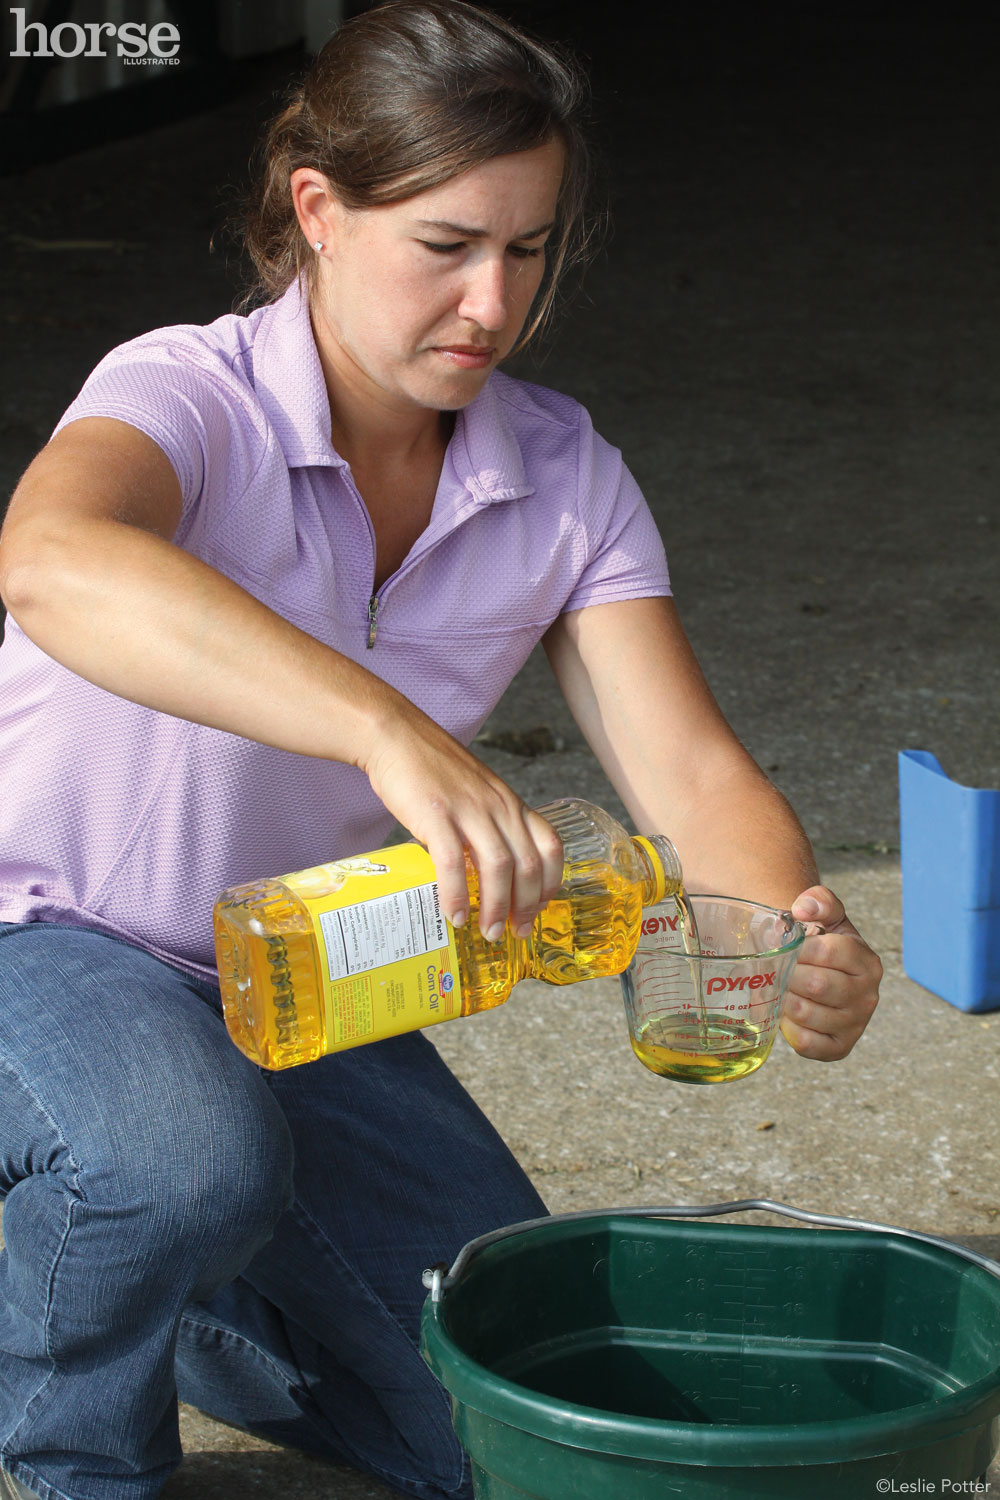 Corn Oil for Horses